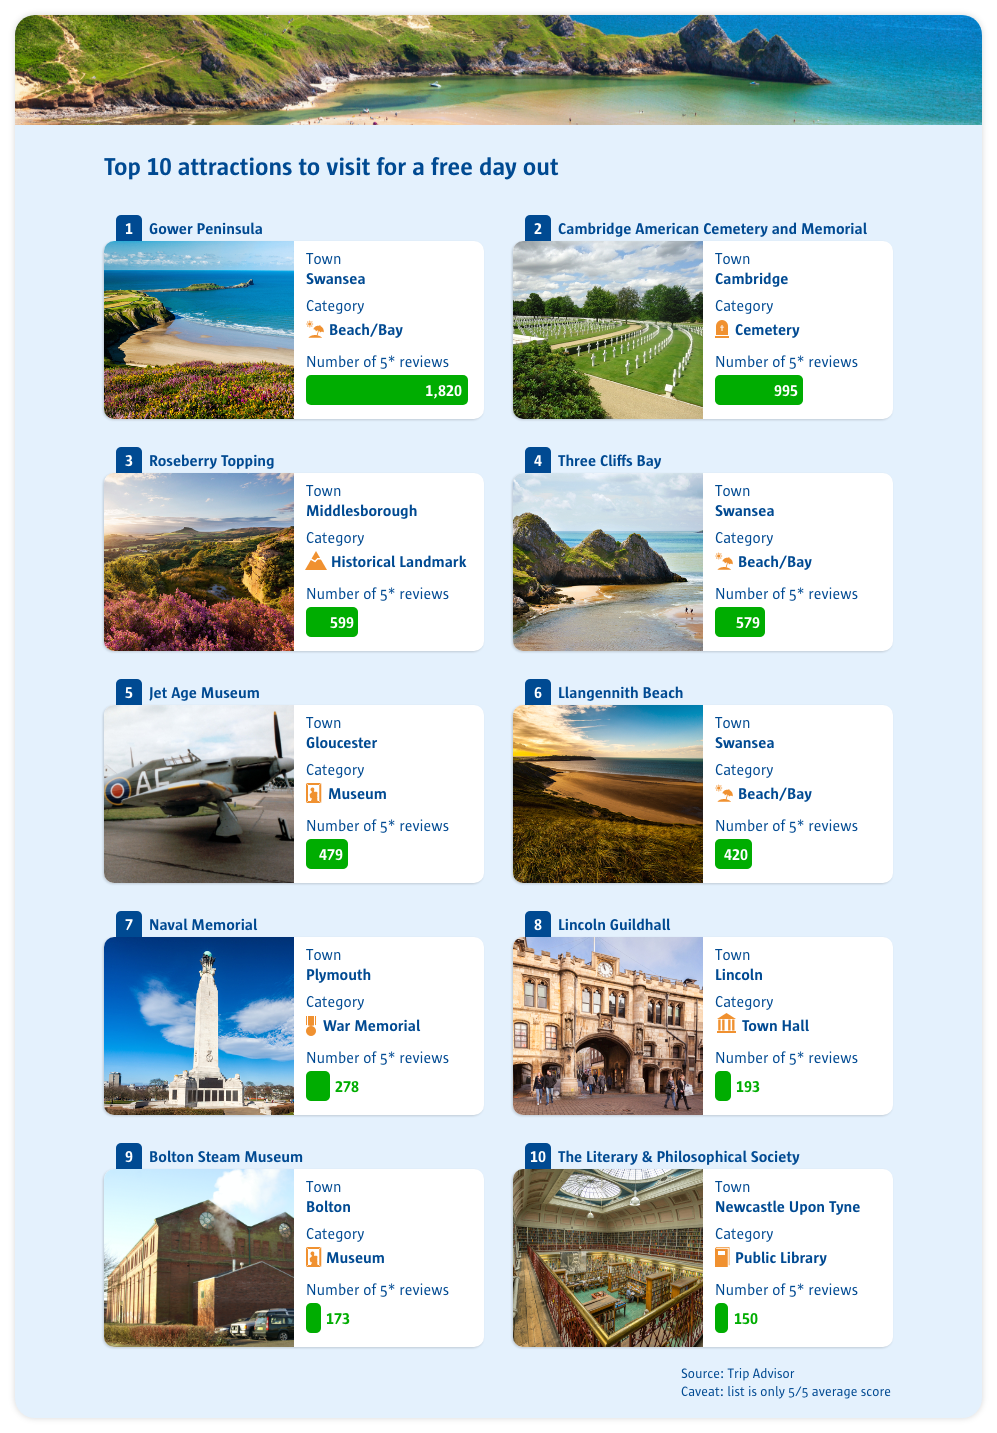 top 10 attractions to visit for a free day out